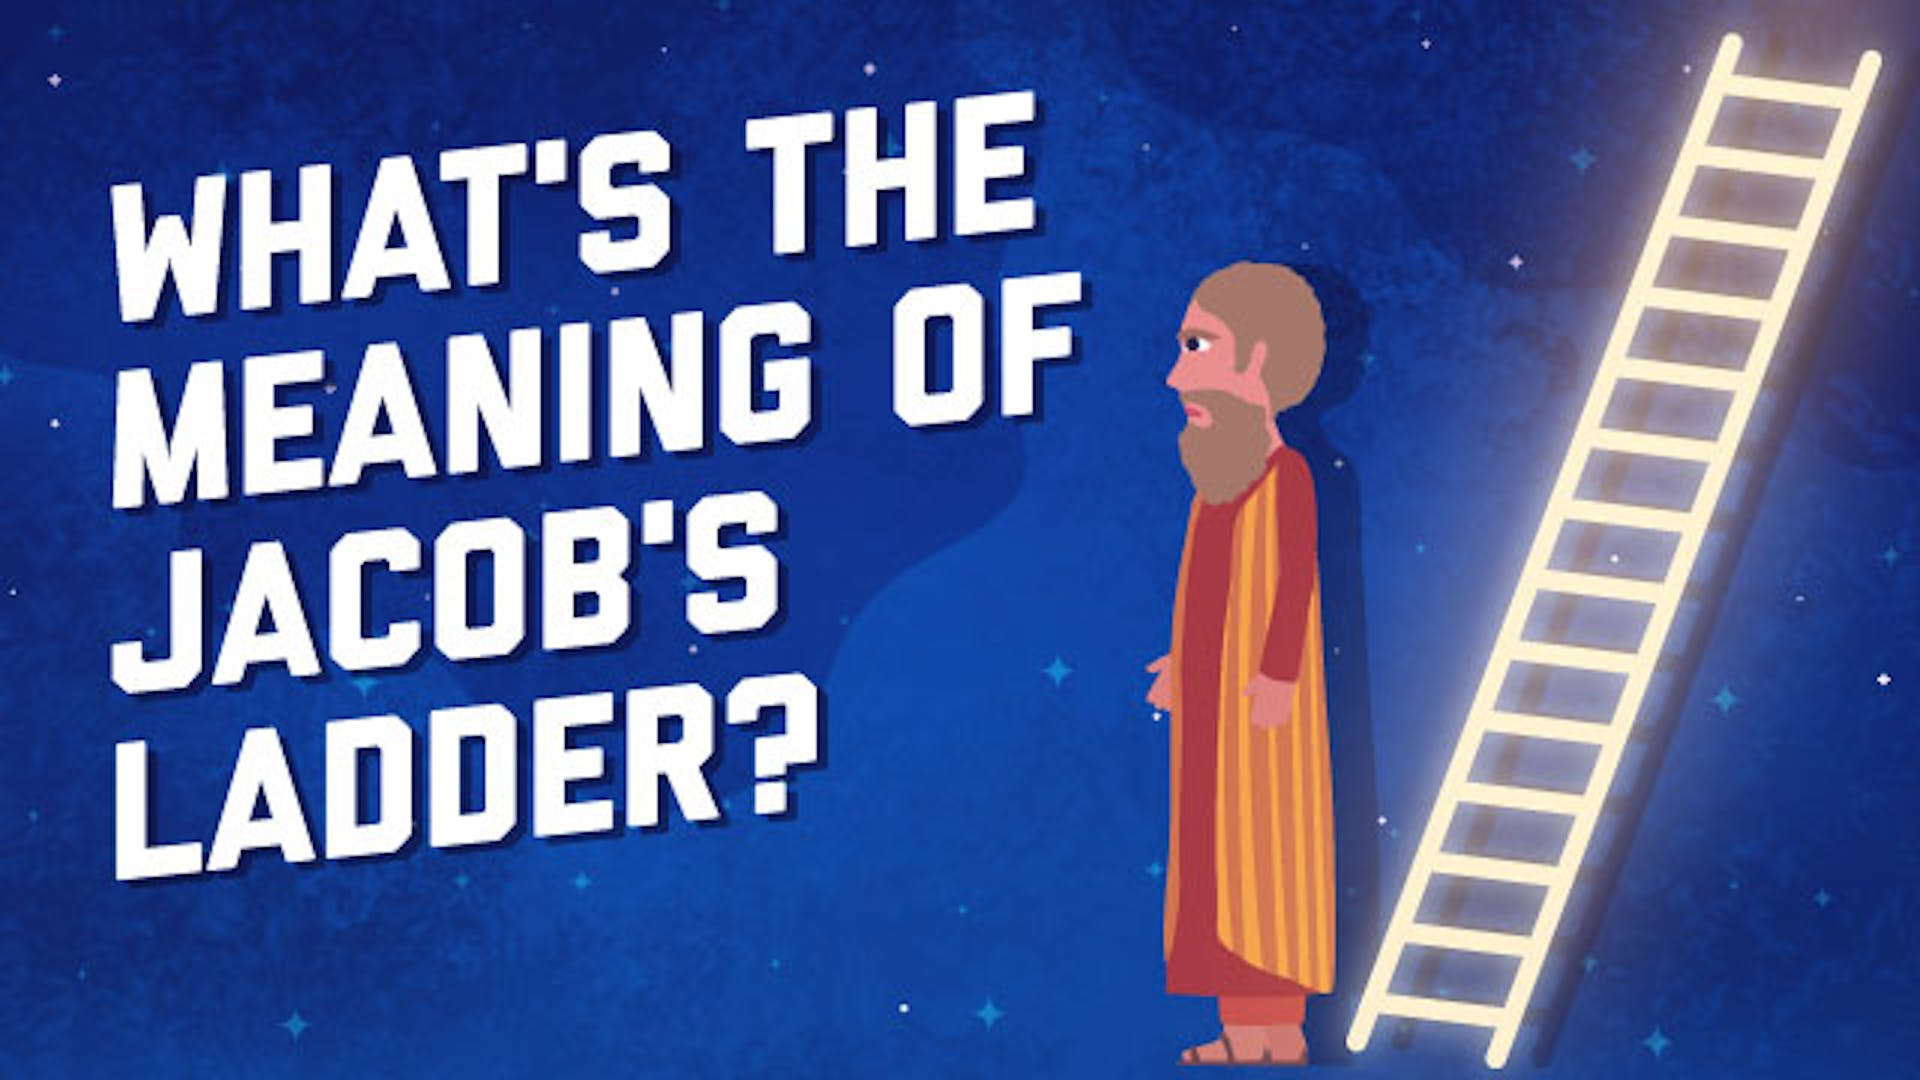 What is Jacob's ladder meaning